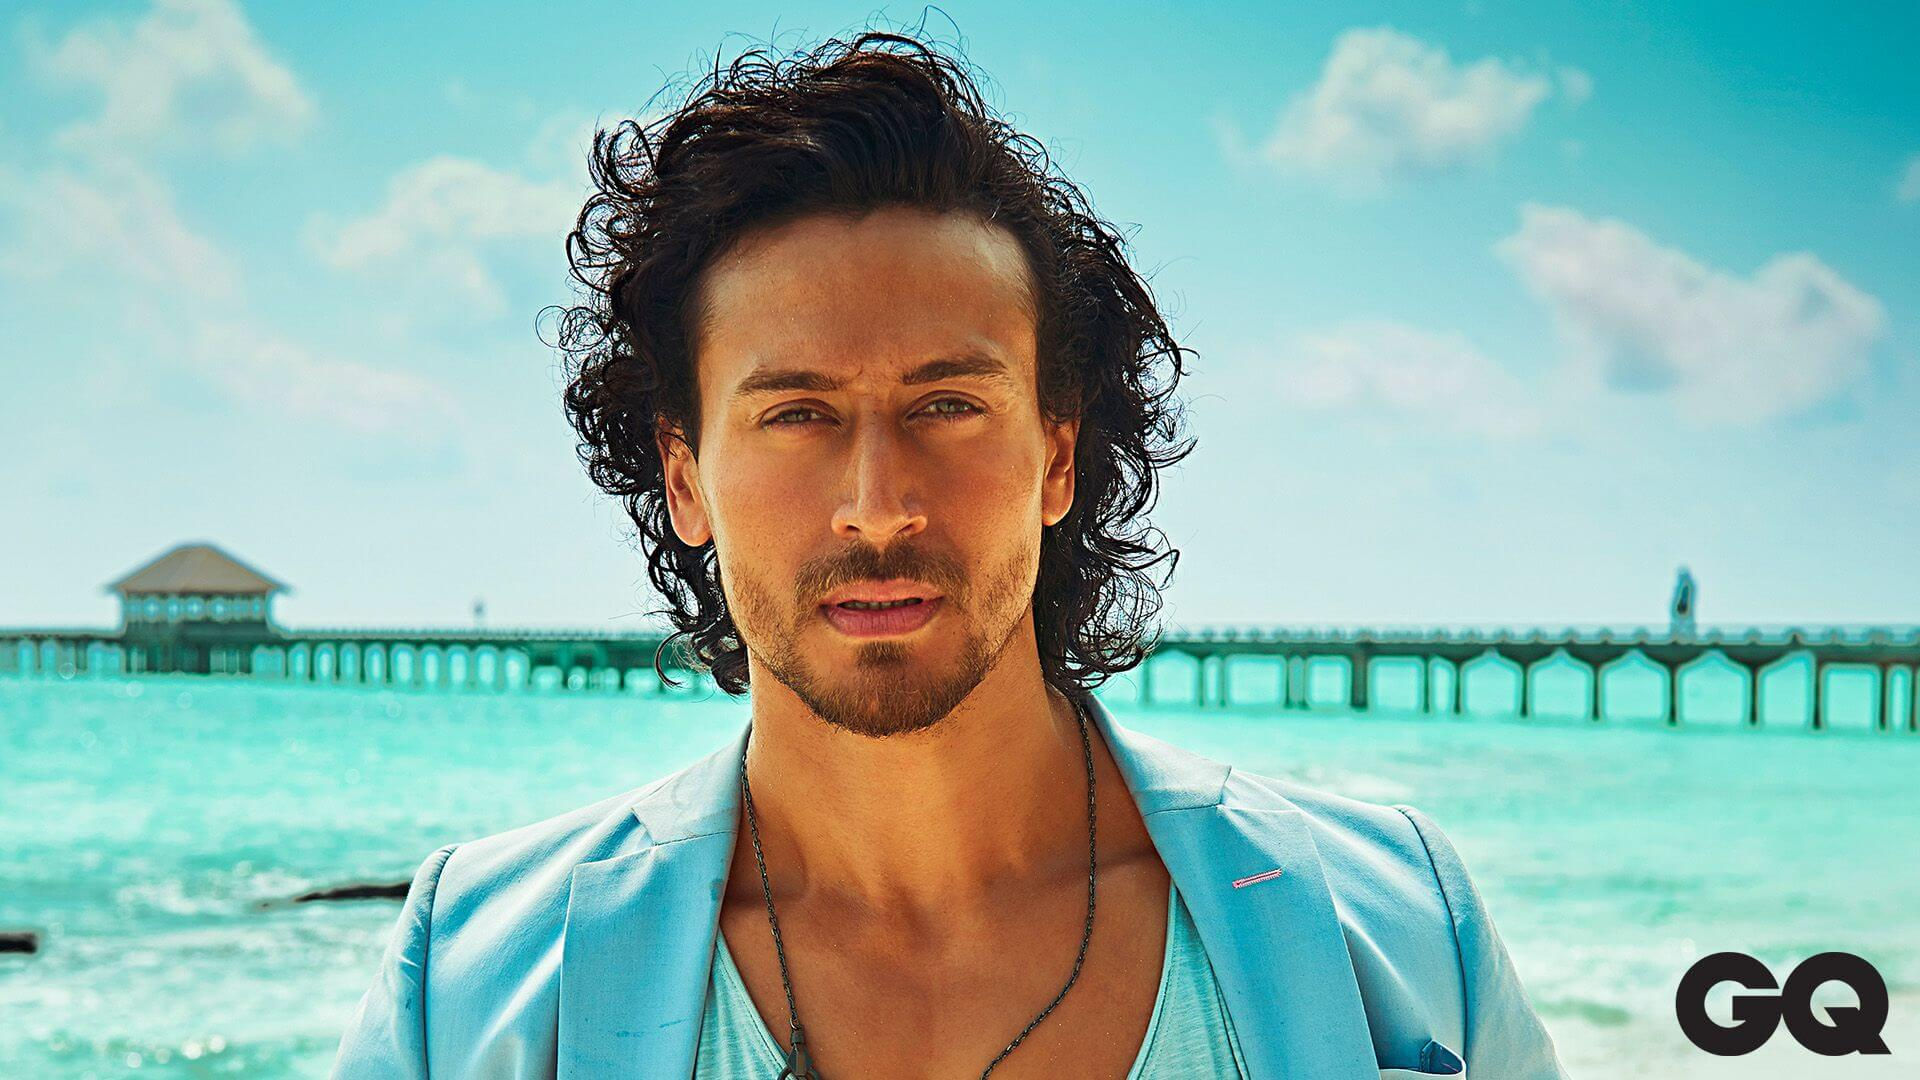 Tiger Shroff Age, Photos(image), Song, Movie, Height, Girlfriend, Sister, Date Of Birth, Net Worth, Biography, Education, Awards, Instagram, Twitter, Facebook, Wiki, Imdb, Youtube (37)